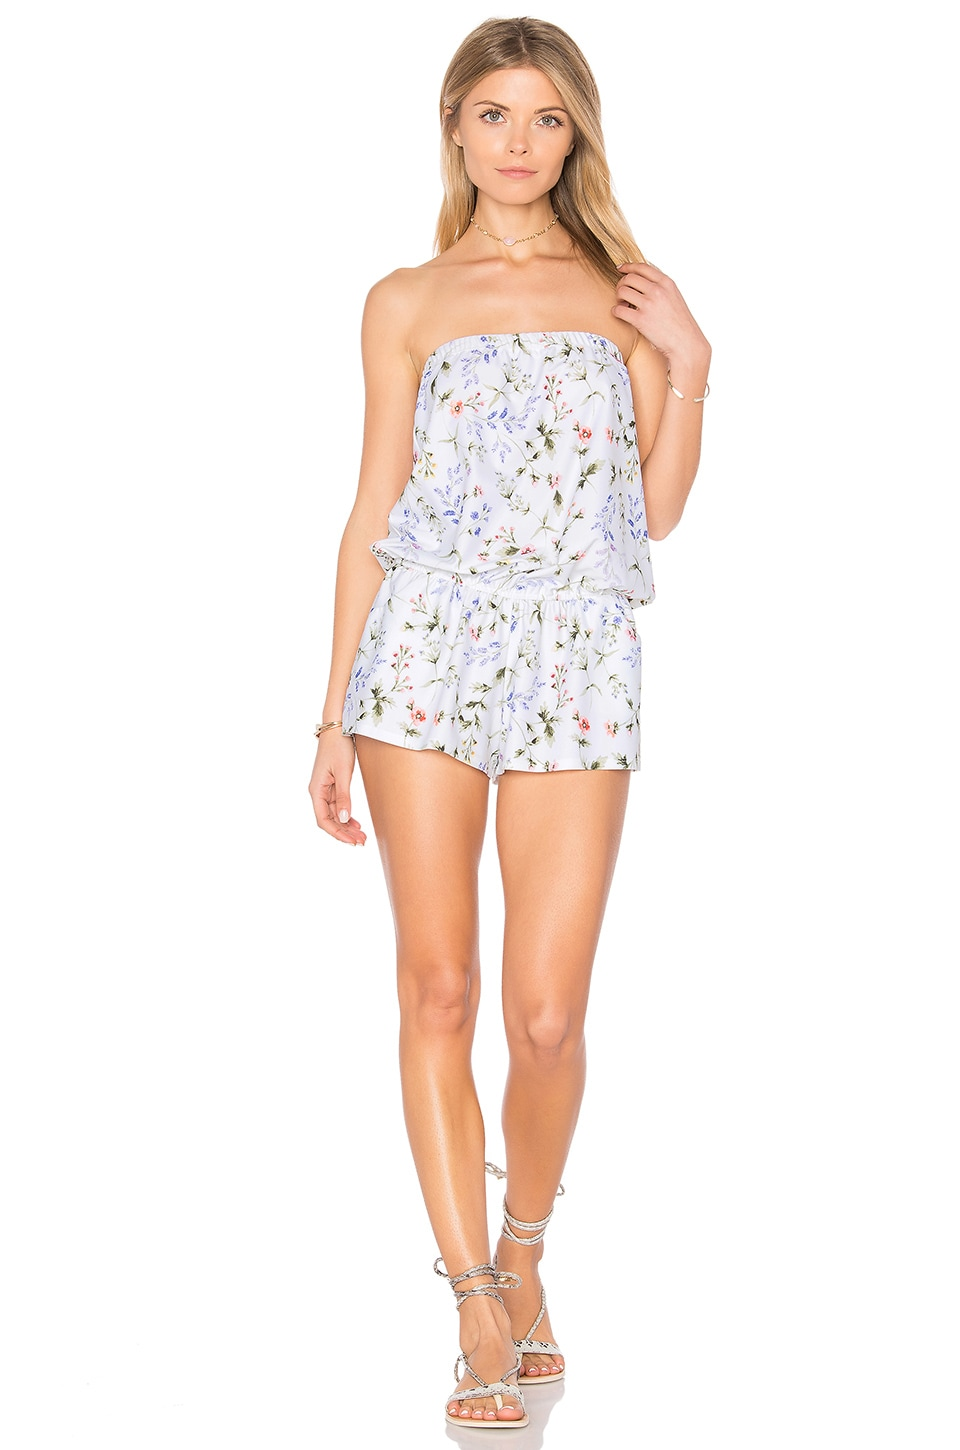 Shoshanna Botanical Floral Strapless Romper in White Multi